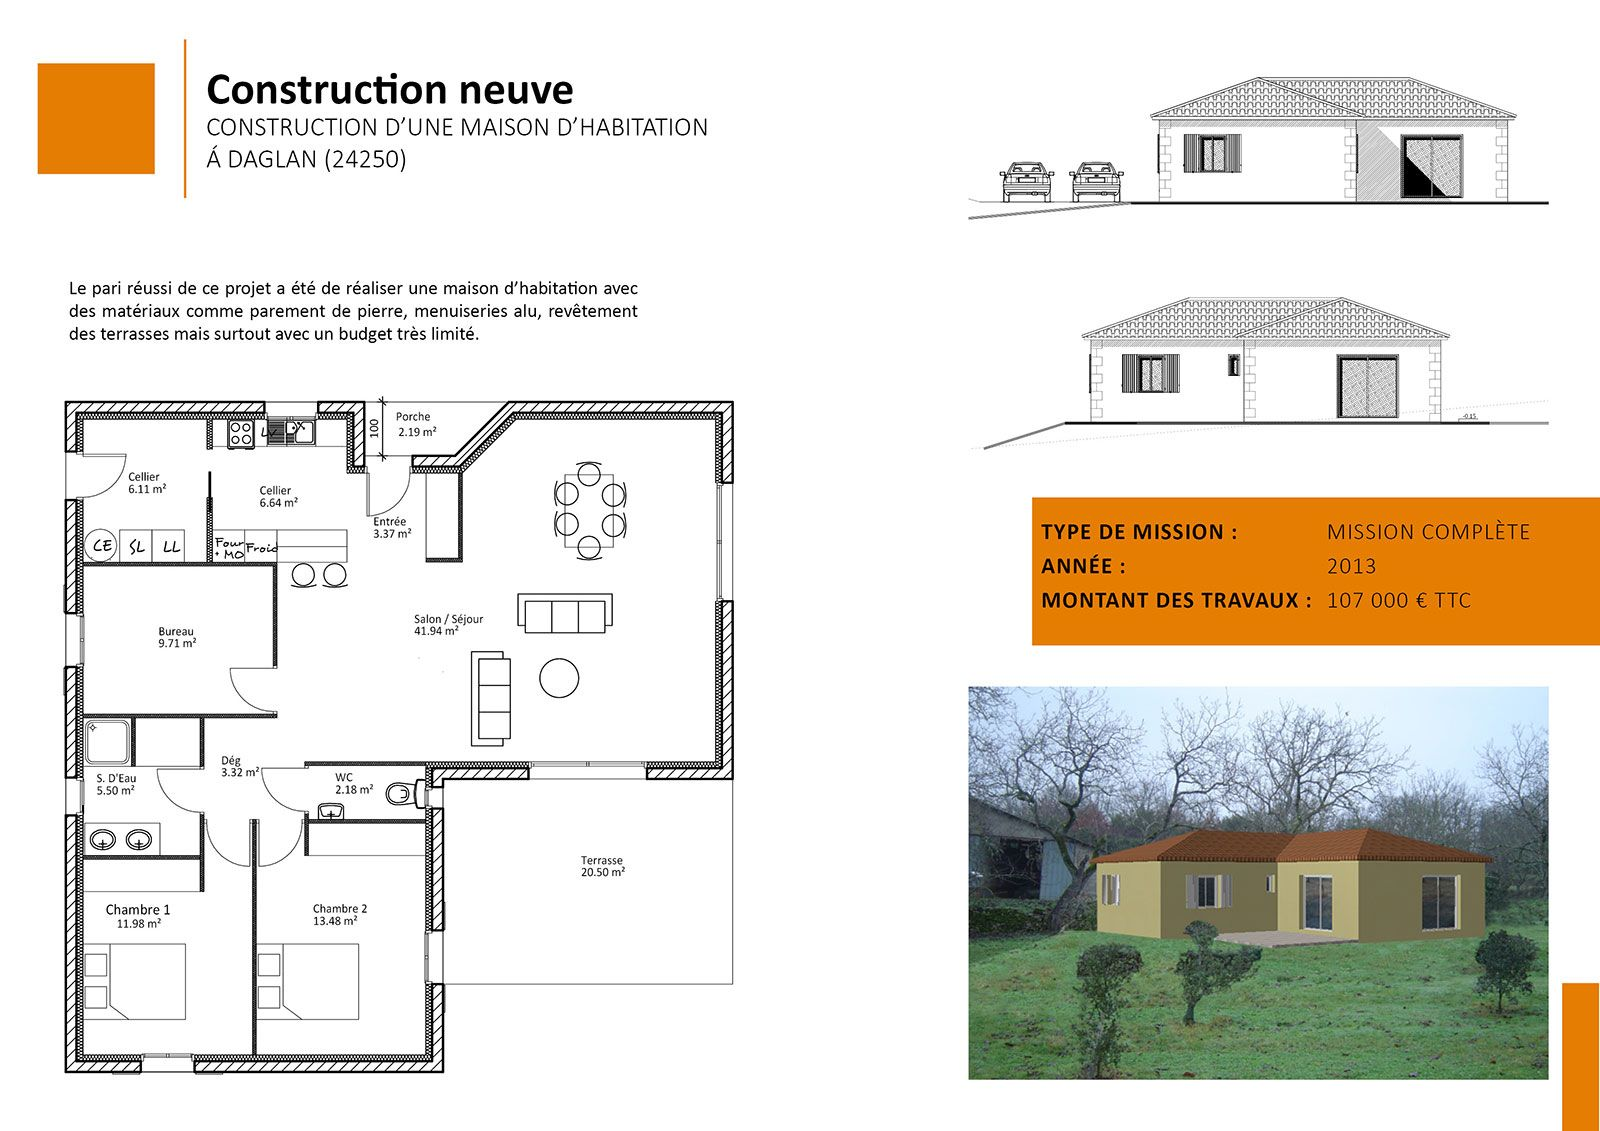 Plan architectural d une maison devoiler plus photo et concepts